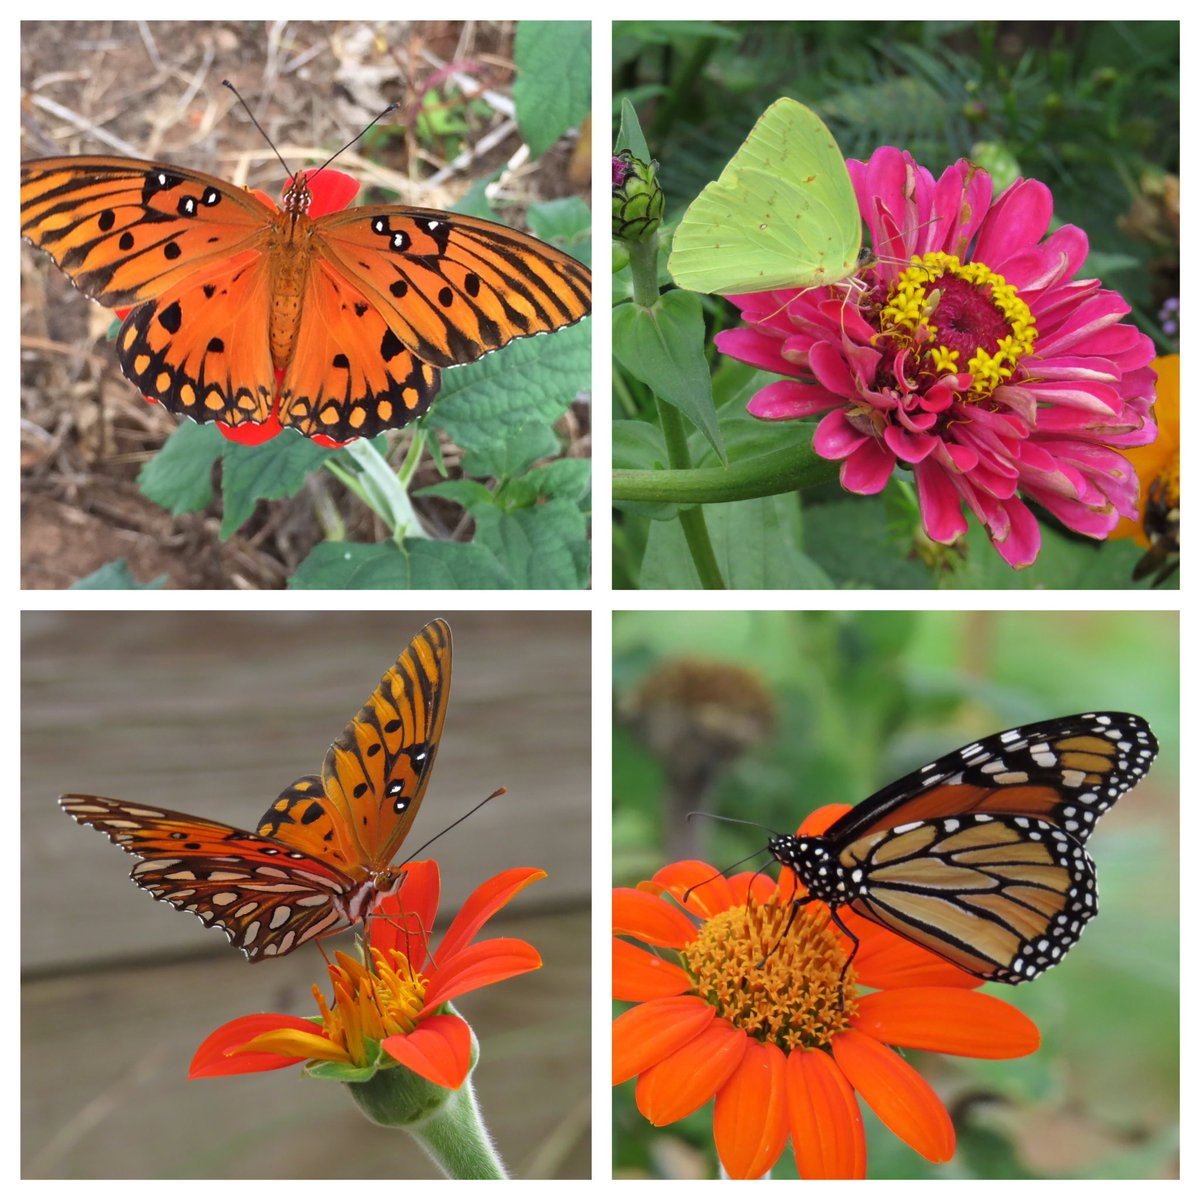 @HortErotica @srilankanflora @MyArizonaSky while they still fly...including a #monarch 10/08/2016 https://t.co/QYInxokzqg